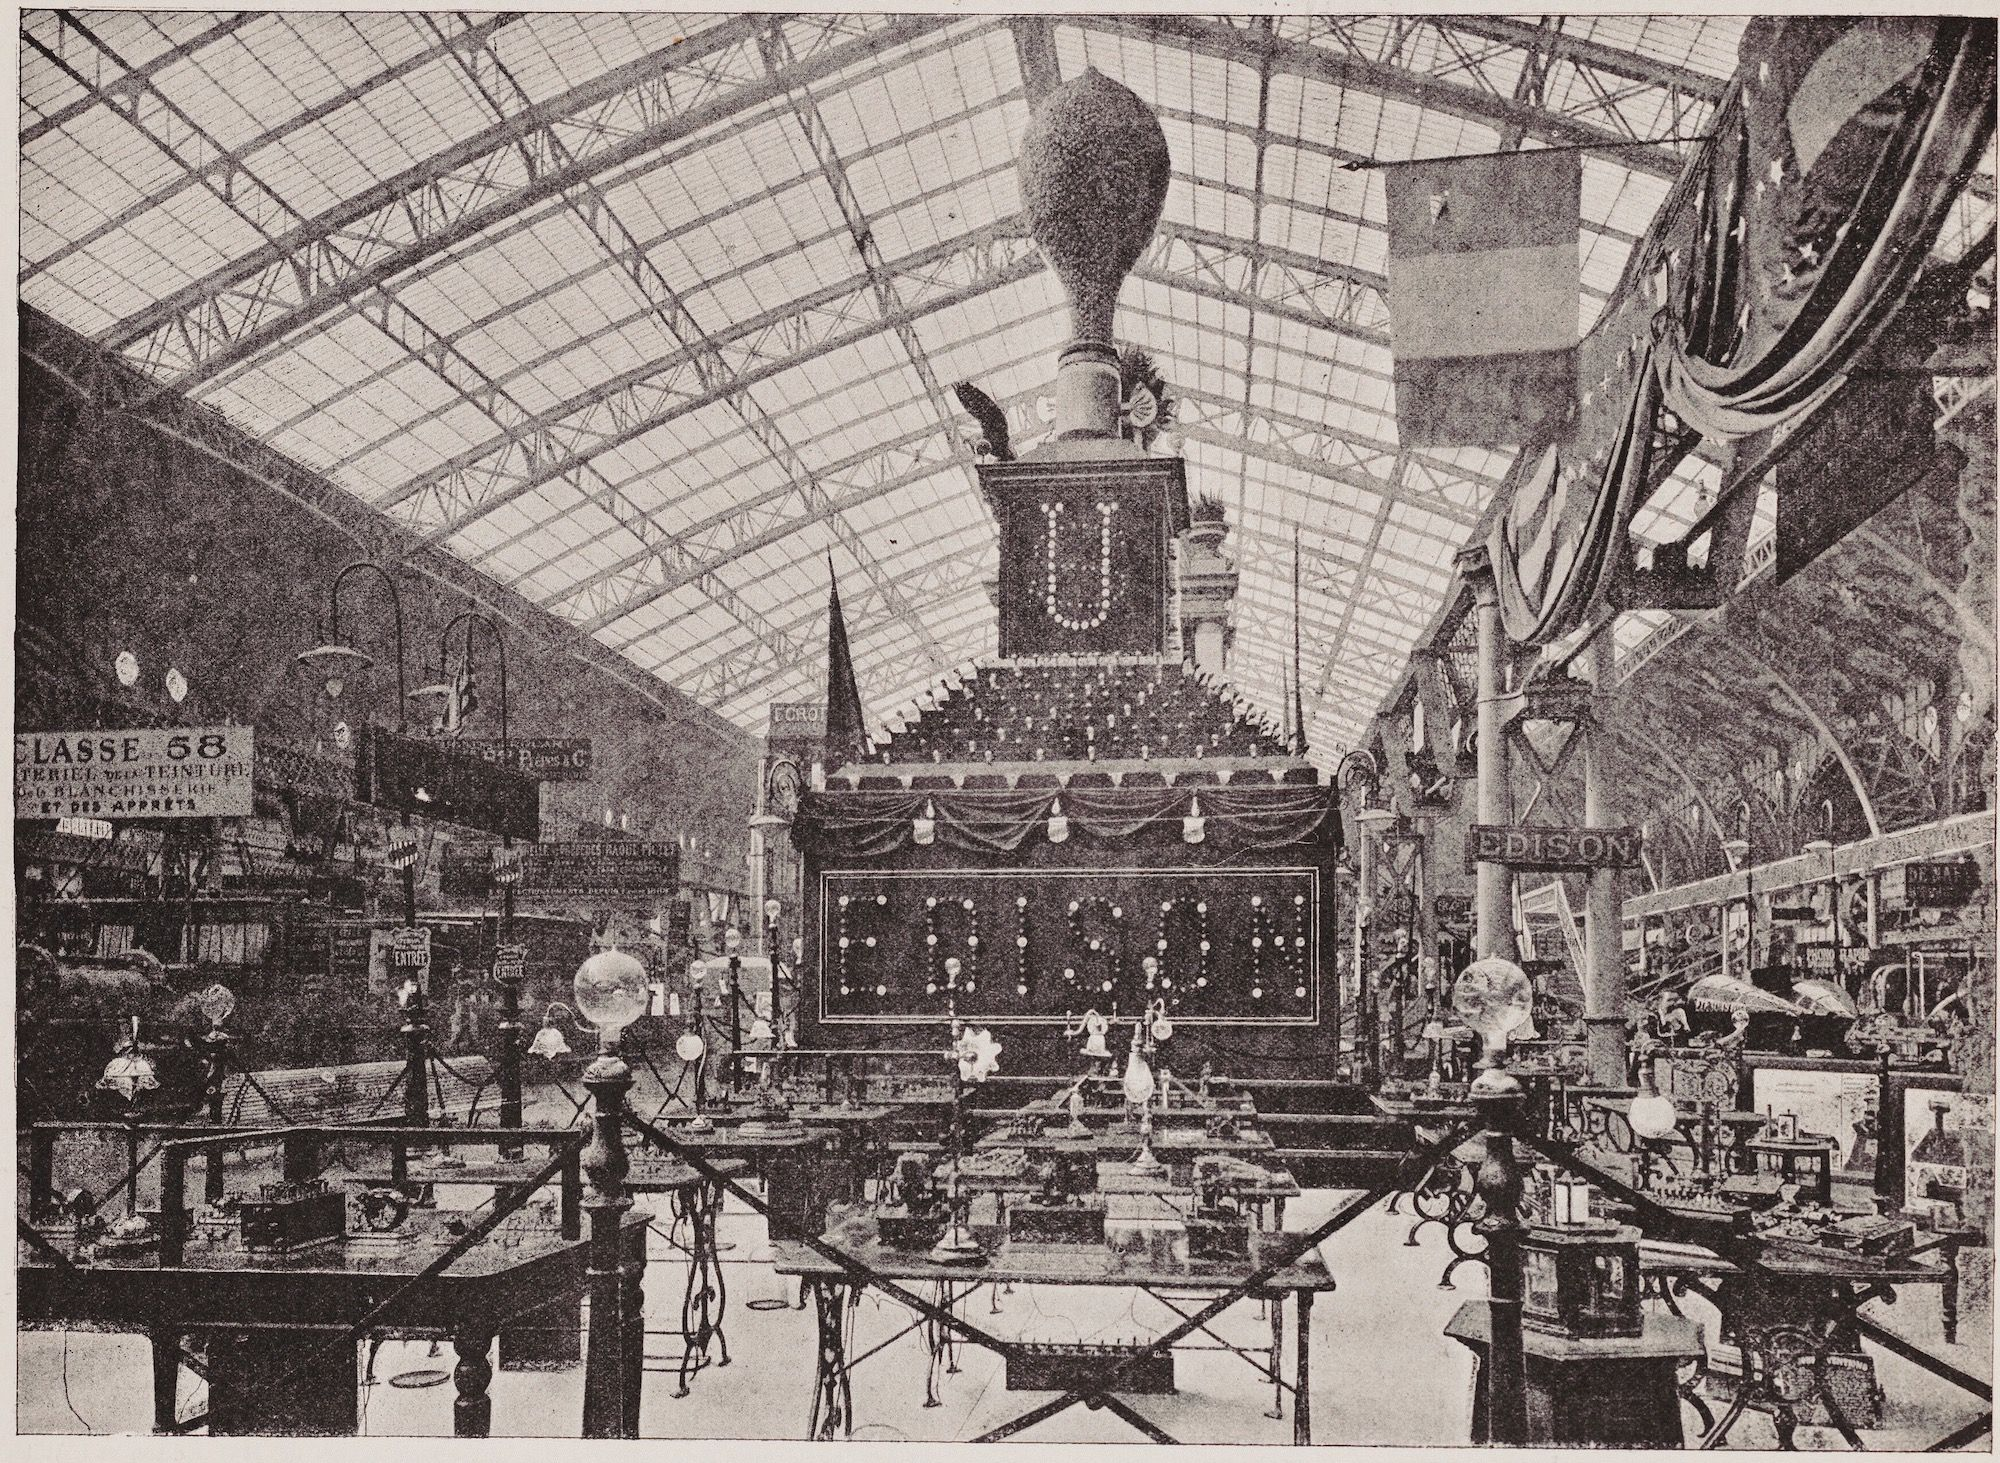 Edison Paris exhibition